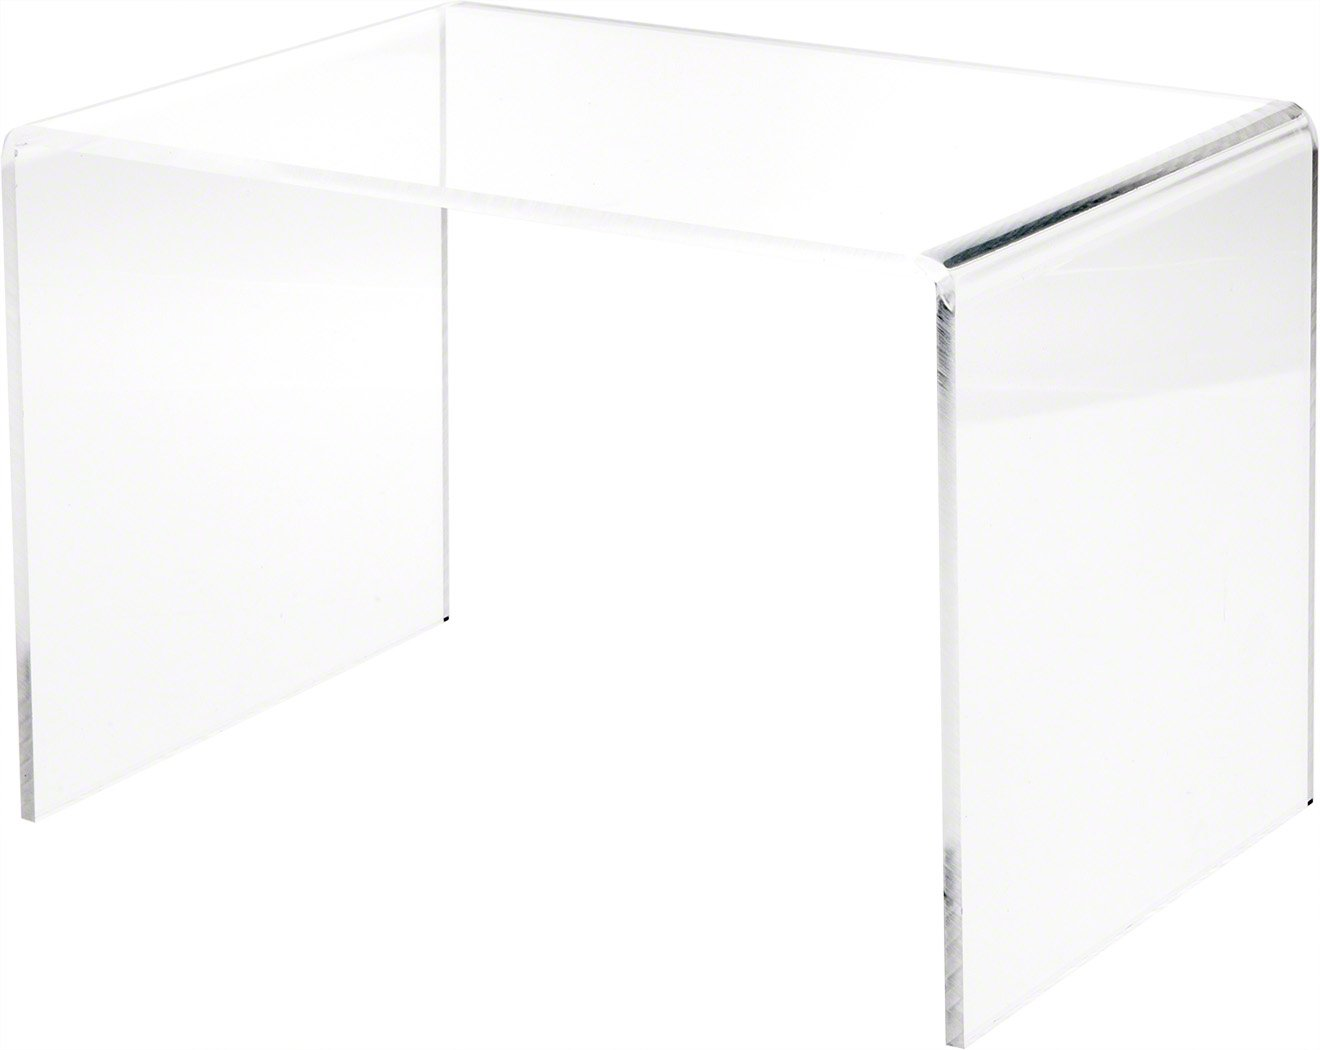 Plymor Clear Acrylic Rectangular Display Riser, 8'' H x 12'' W x 8'' D (1/4'' Thick) by Plymor